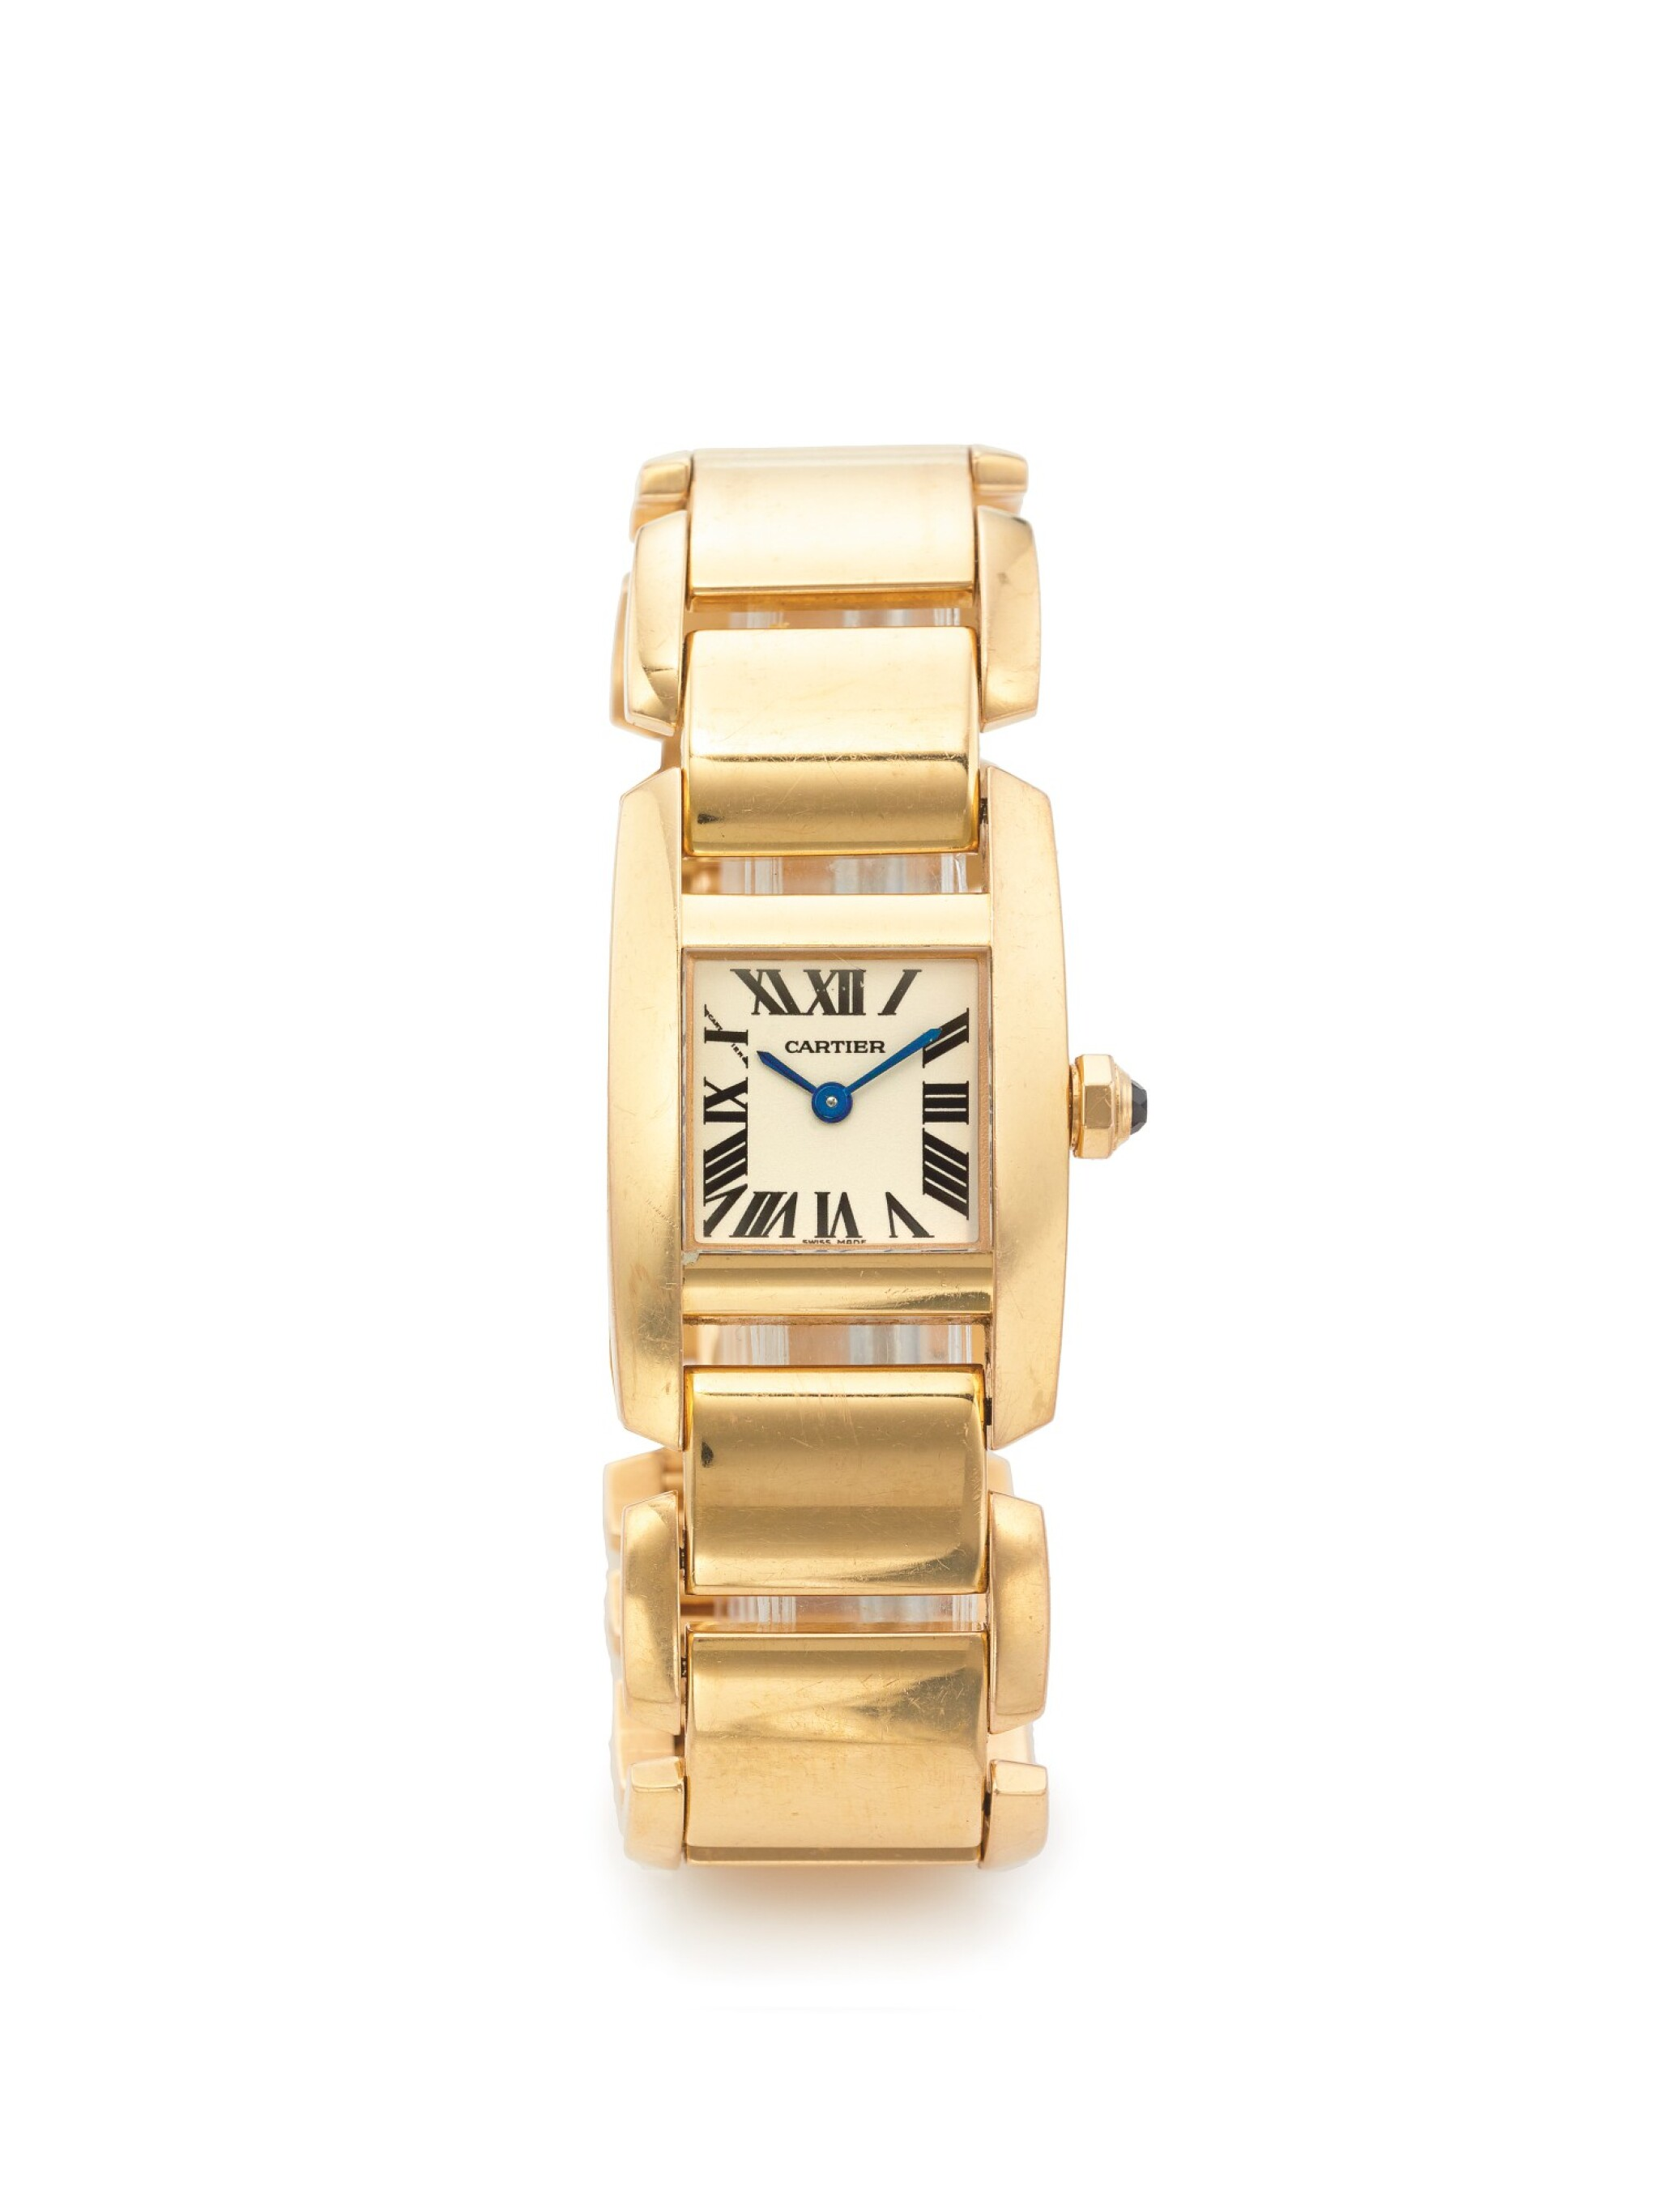 View 1 of Lot 34. CARTIER | REF 2801 TANKISSIME, A PINK GOLD WRISTWATCH WITH BRACELET CIRCA 2005.